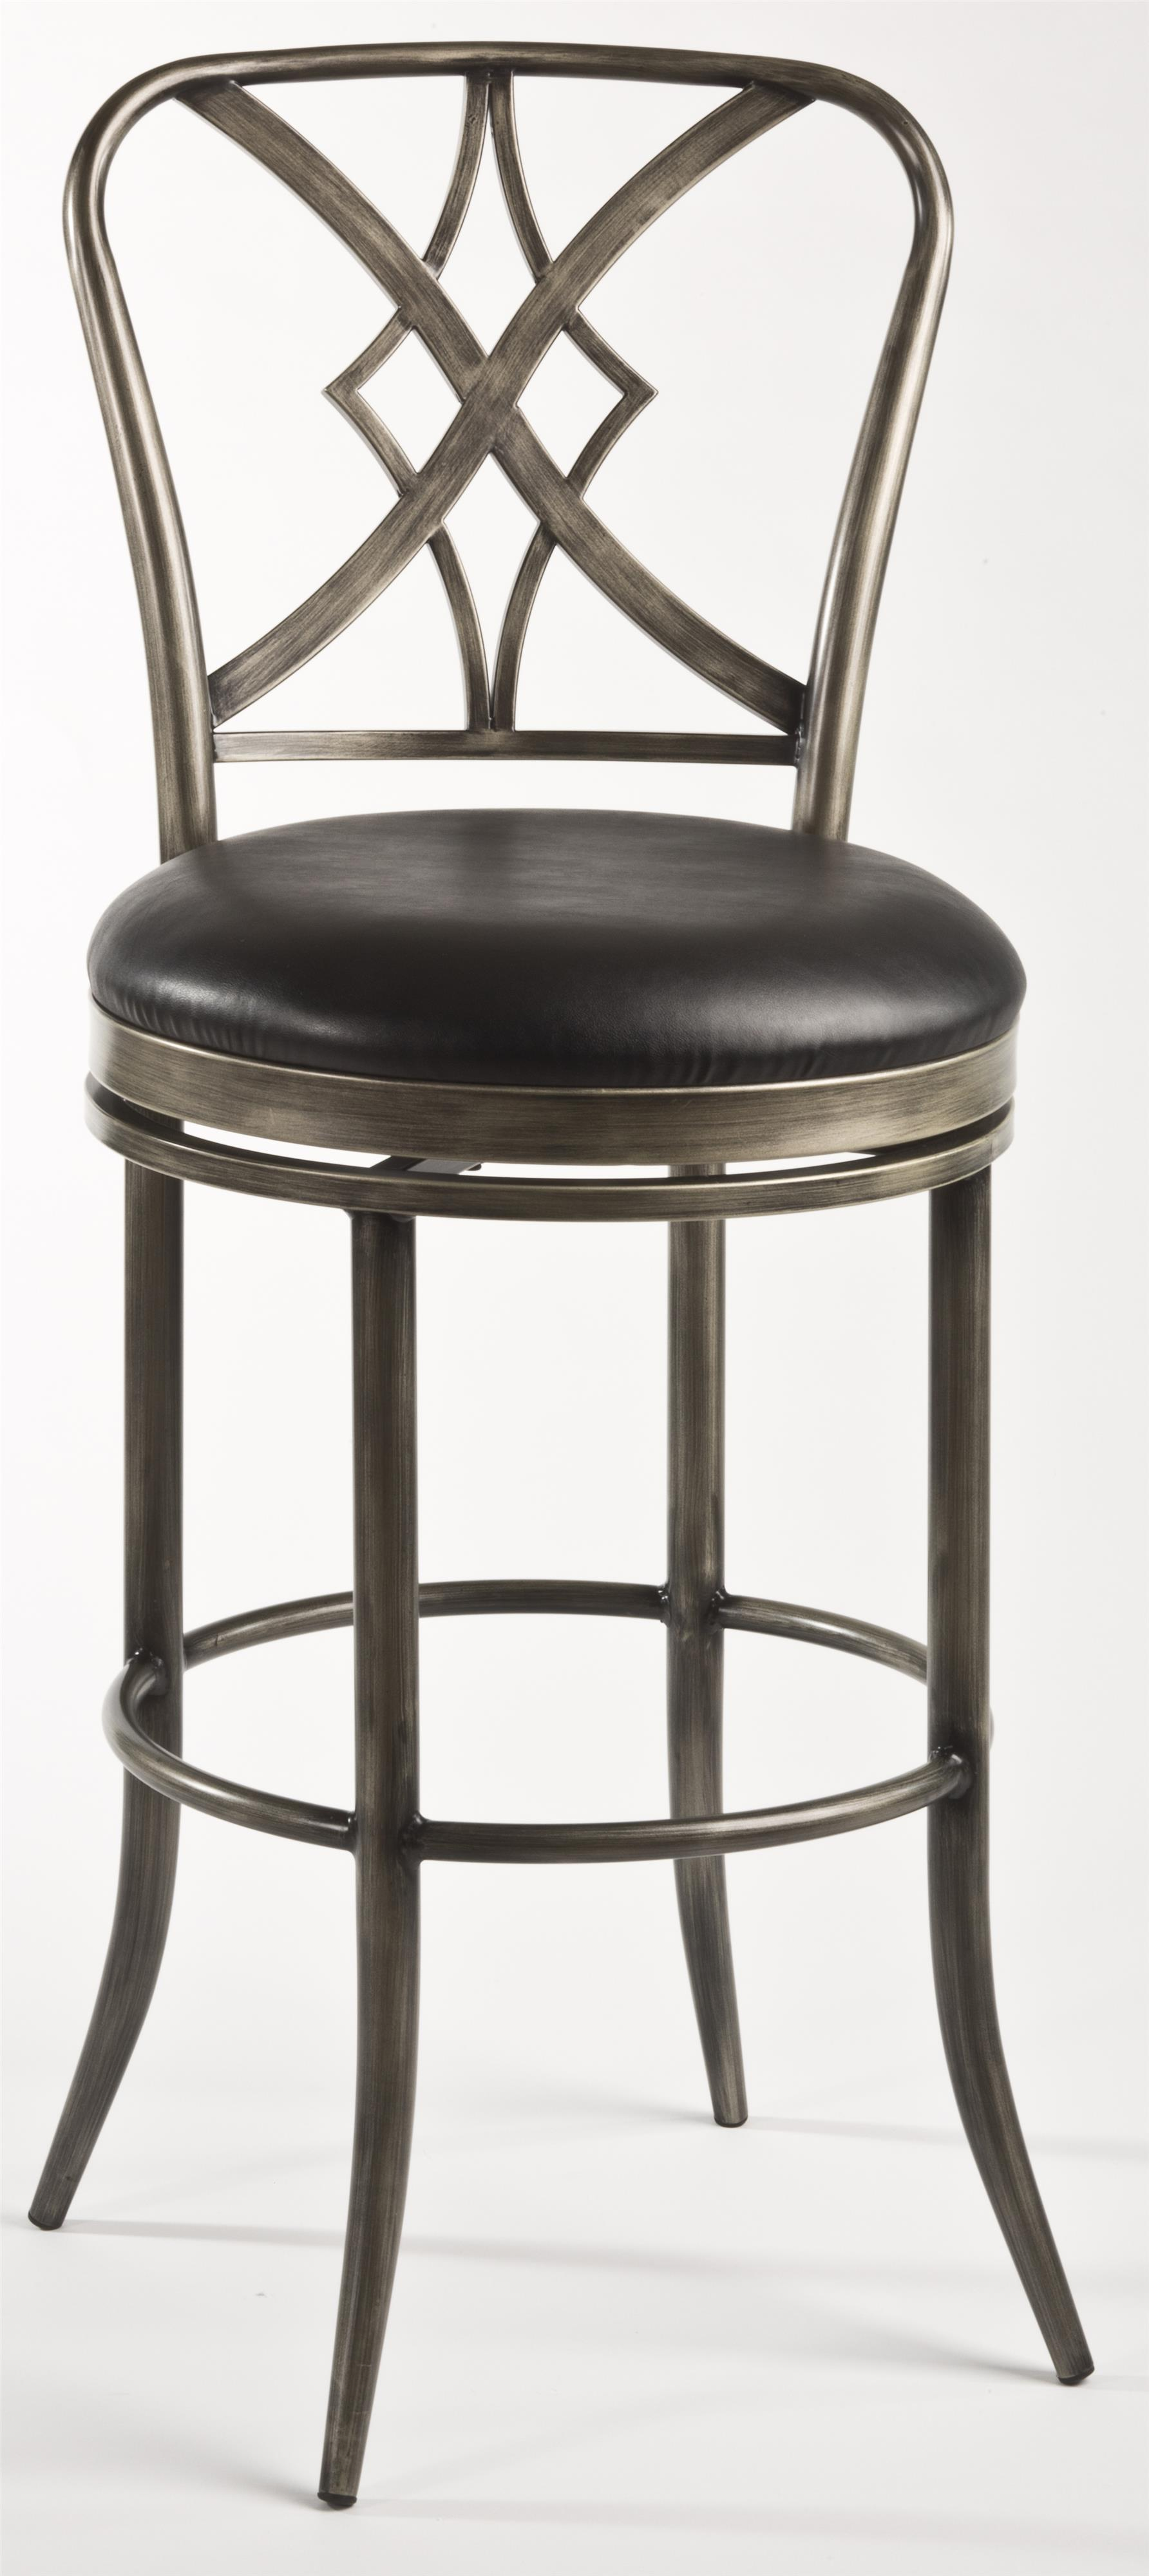 Hillsdale Metal Stools Jacqueline Bar Stool - Item Number: 5124-830